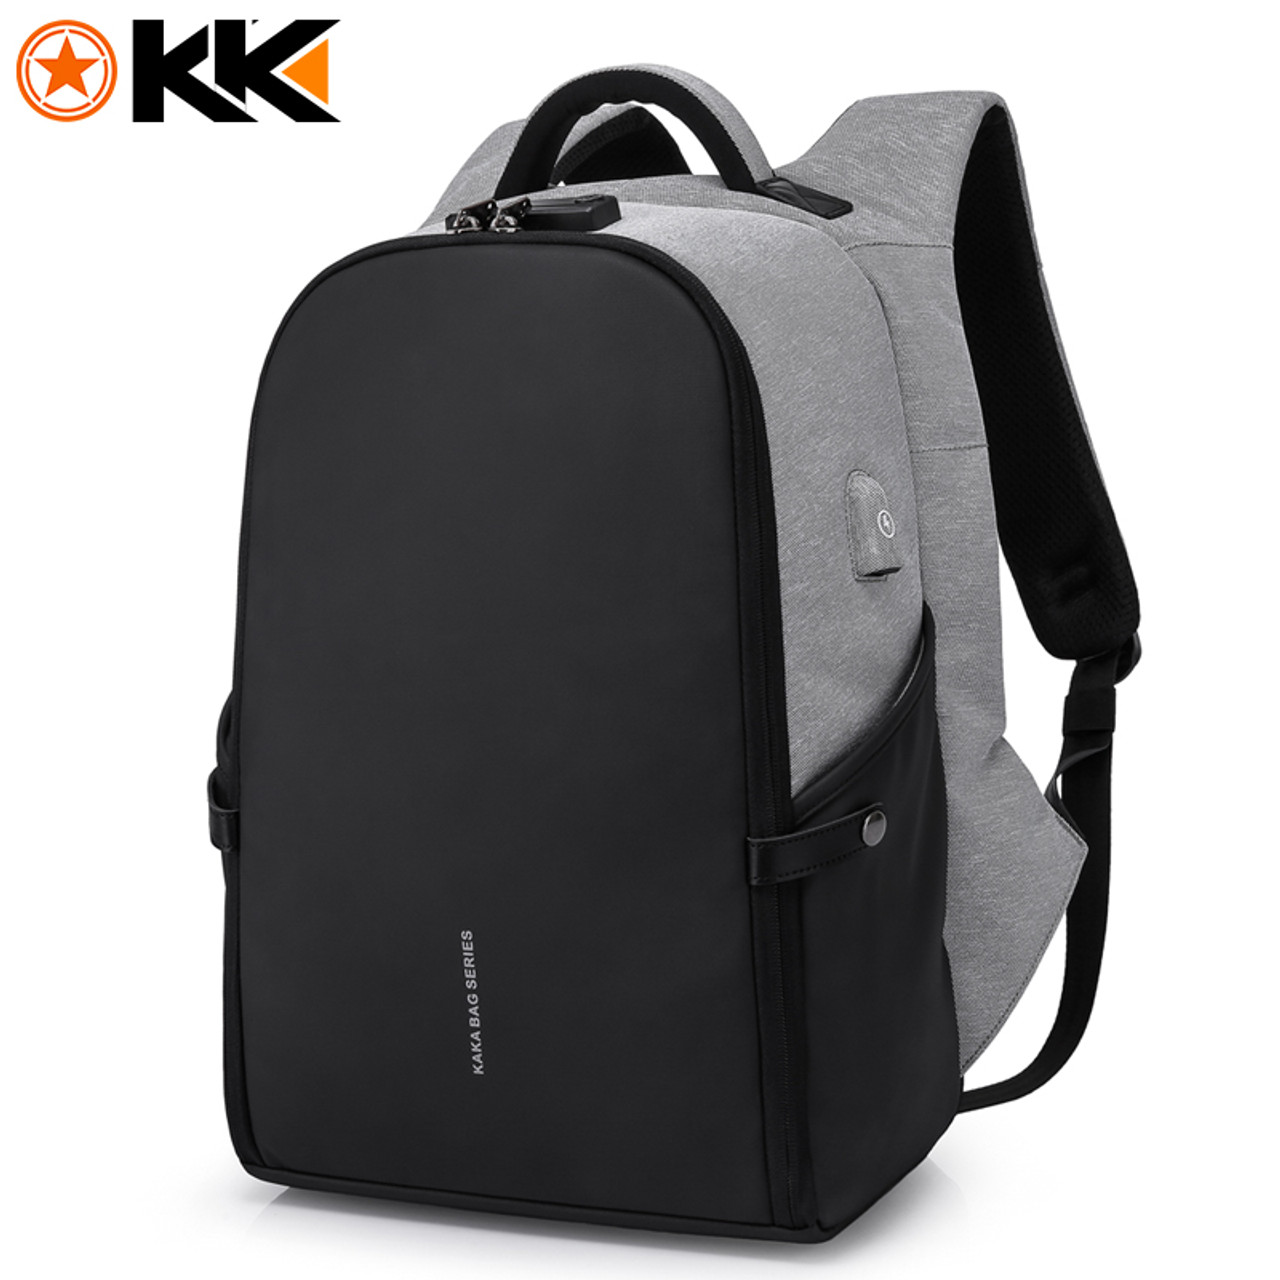 a205070a5309 KAKA New 15.6inch Laptop Backpack Male USB Business Anti theft Backpack for  Men Mochila Fashion Travel Backpacks School Bags 806